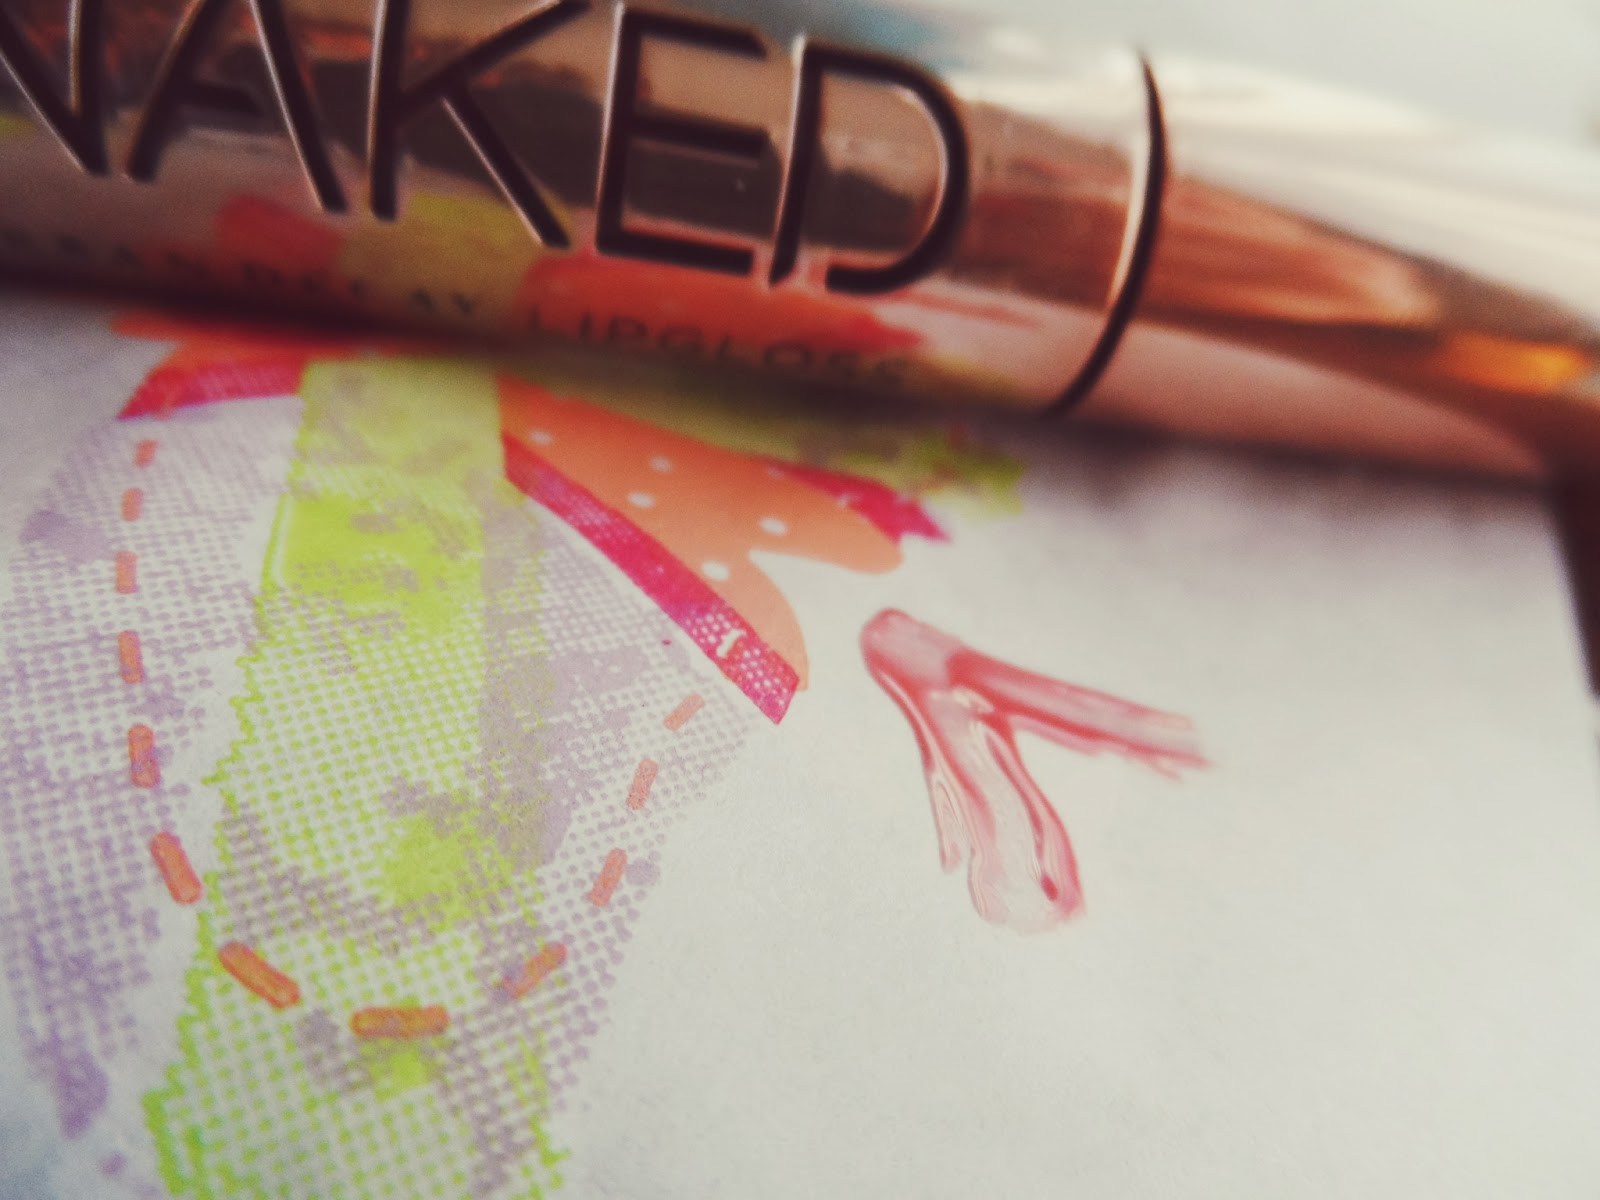 urban decay pink liar lipgloss swatch image